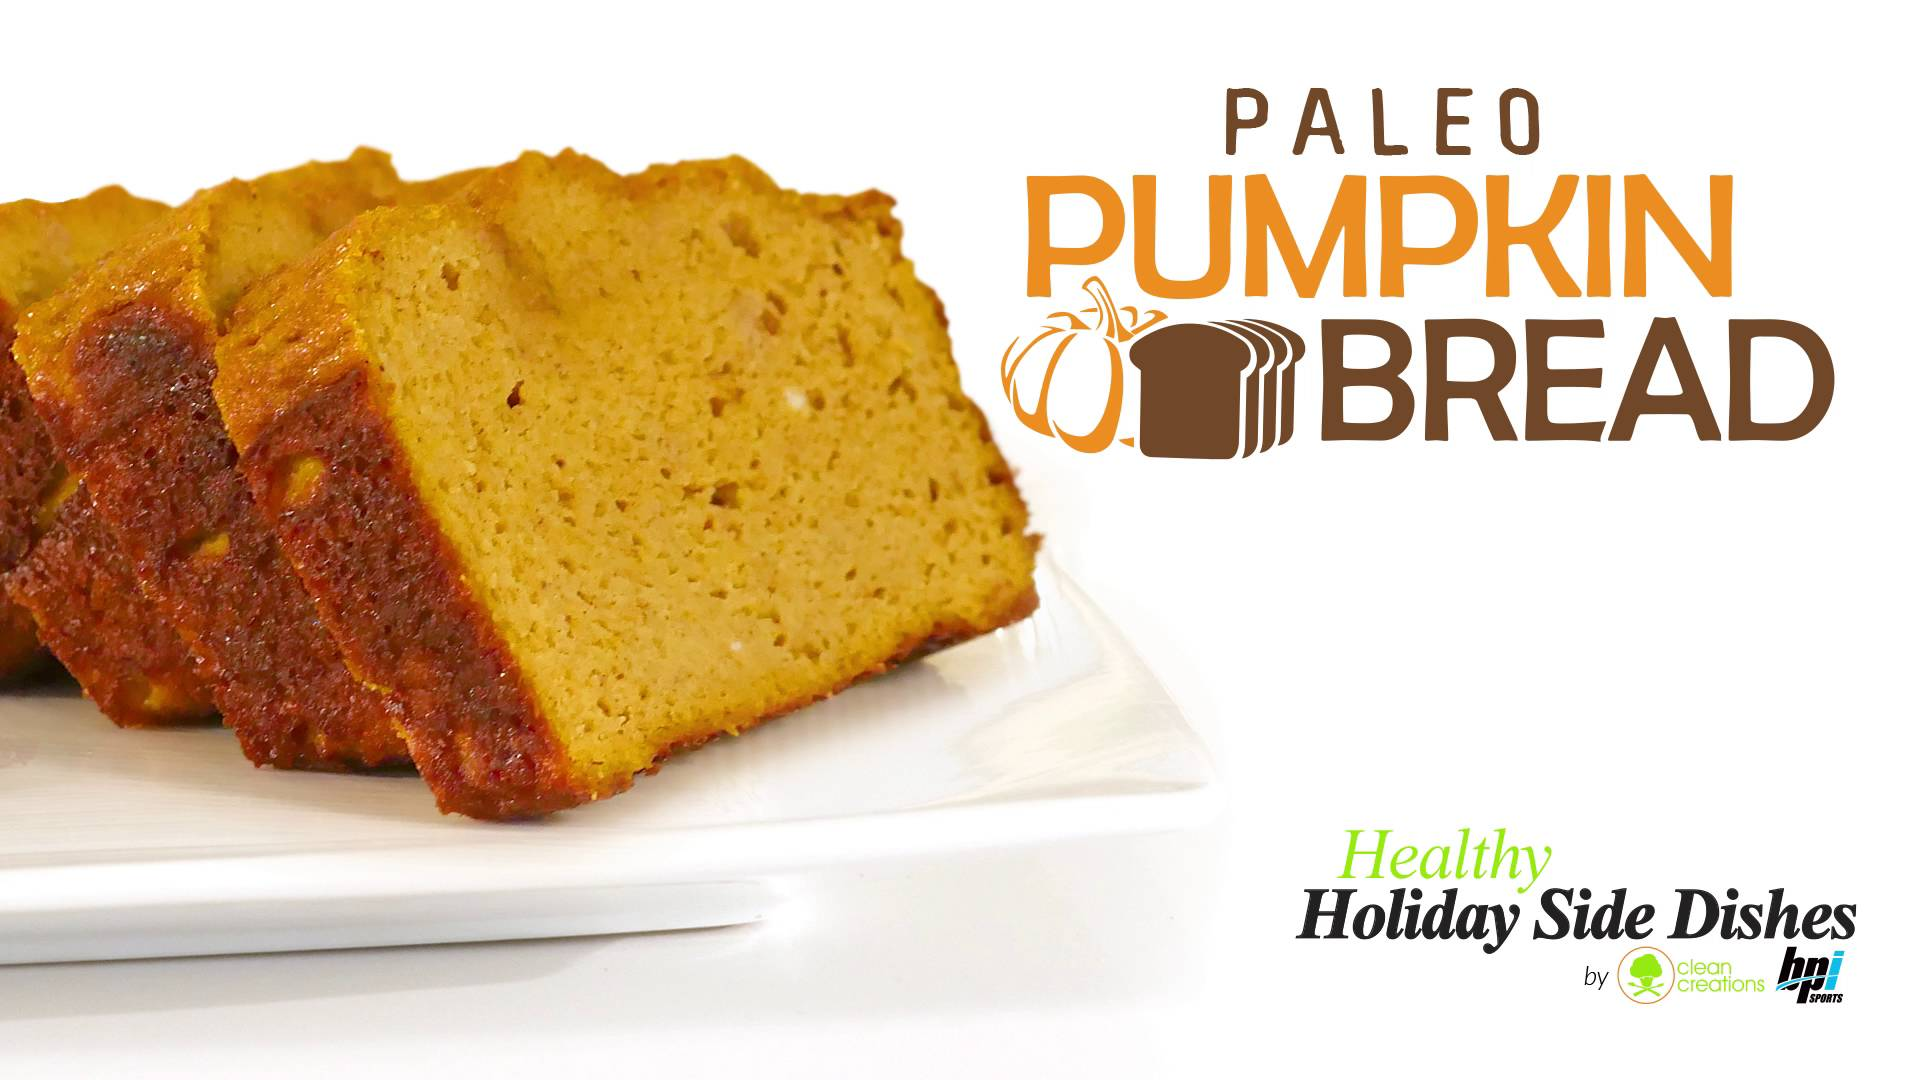 Recipe: Paleo Pumpkin Bread